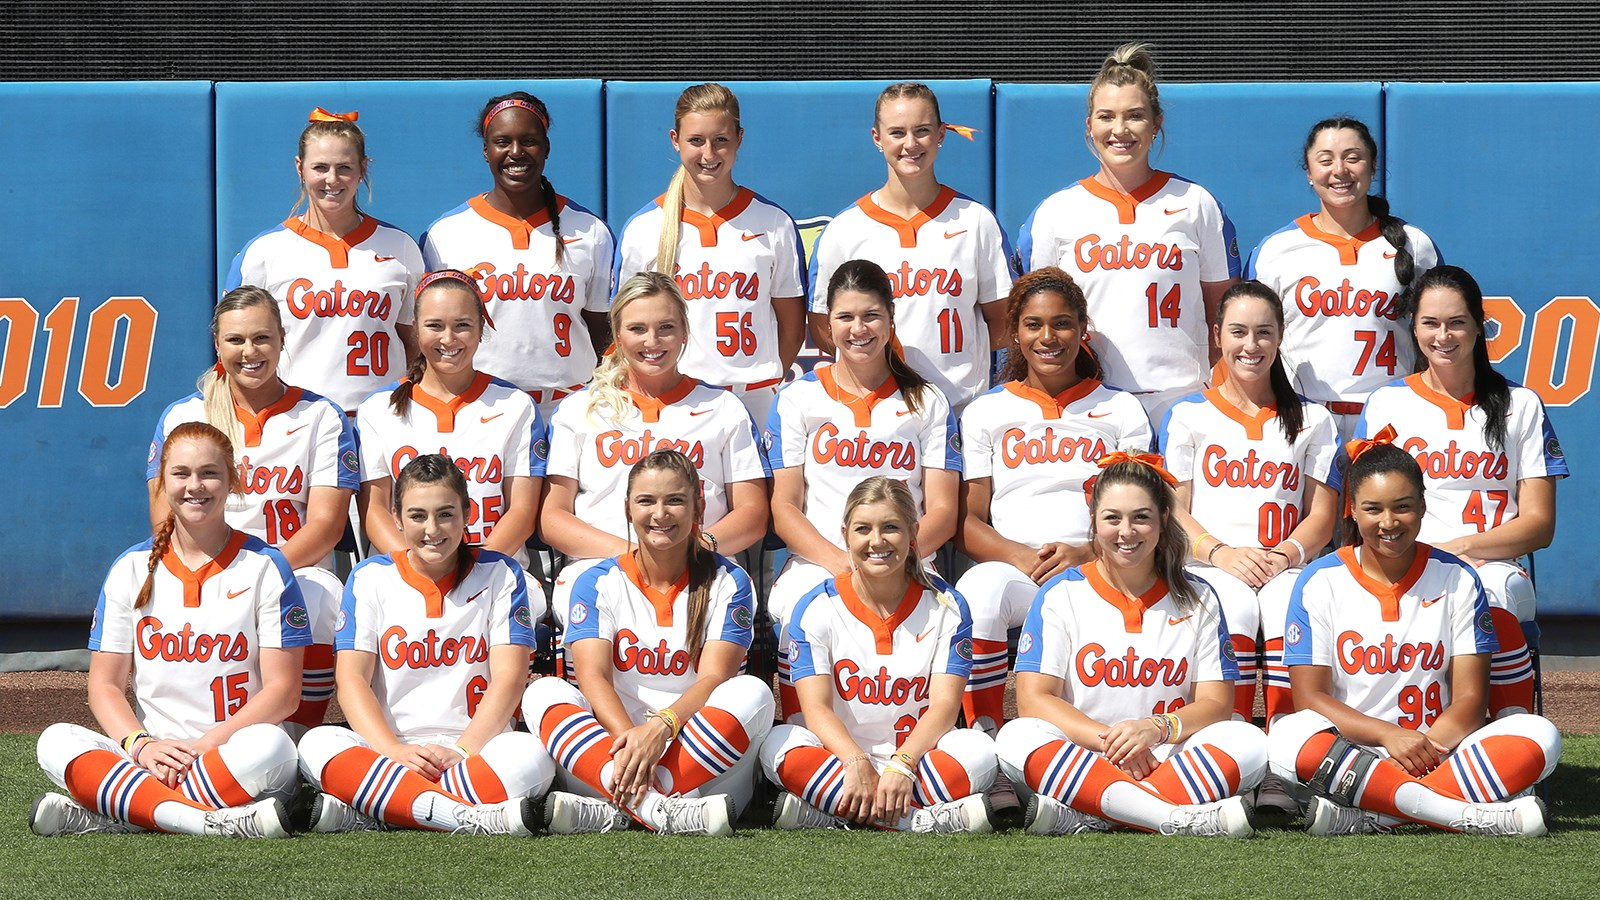 2018 Softball Roster Florida Gators